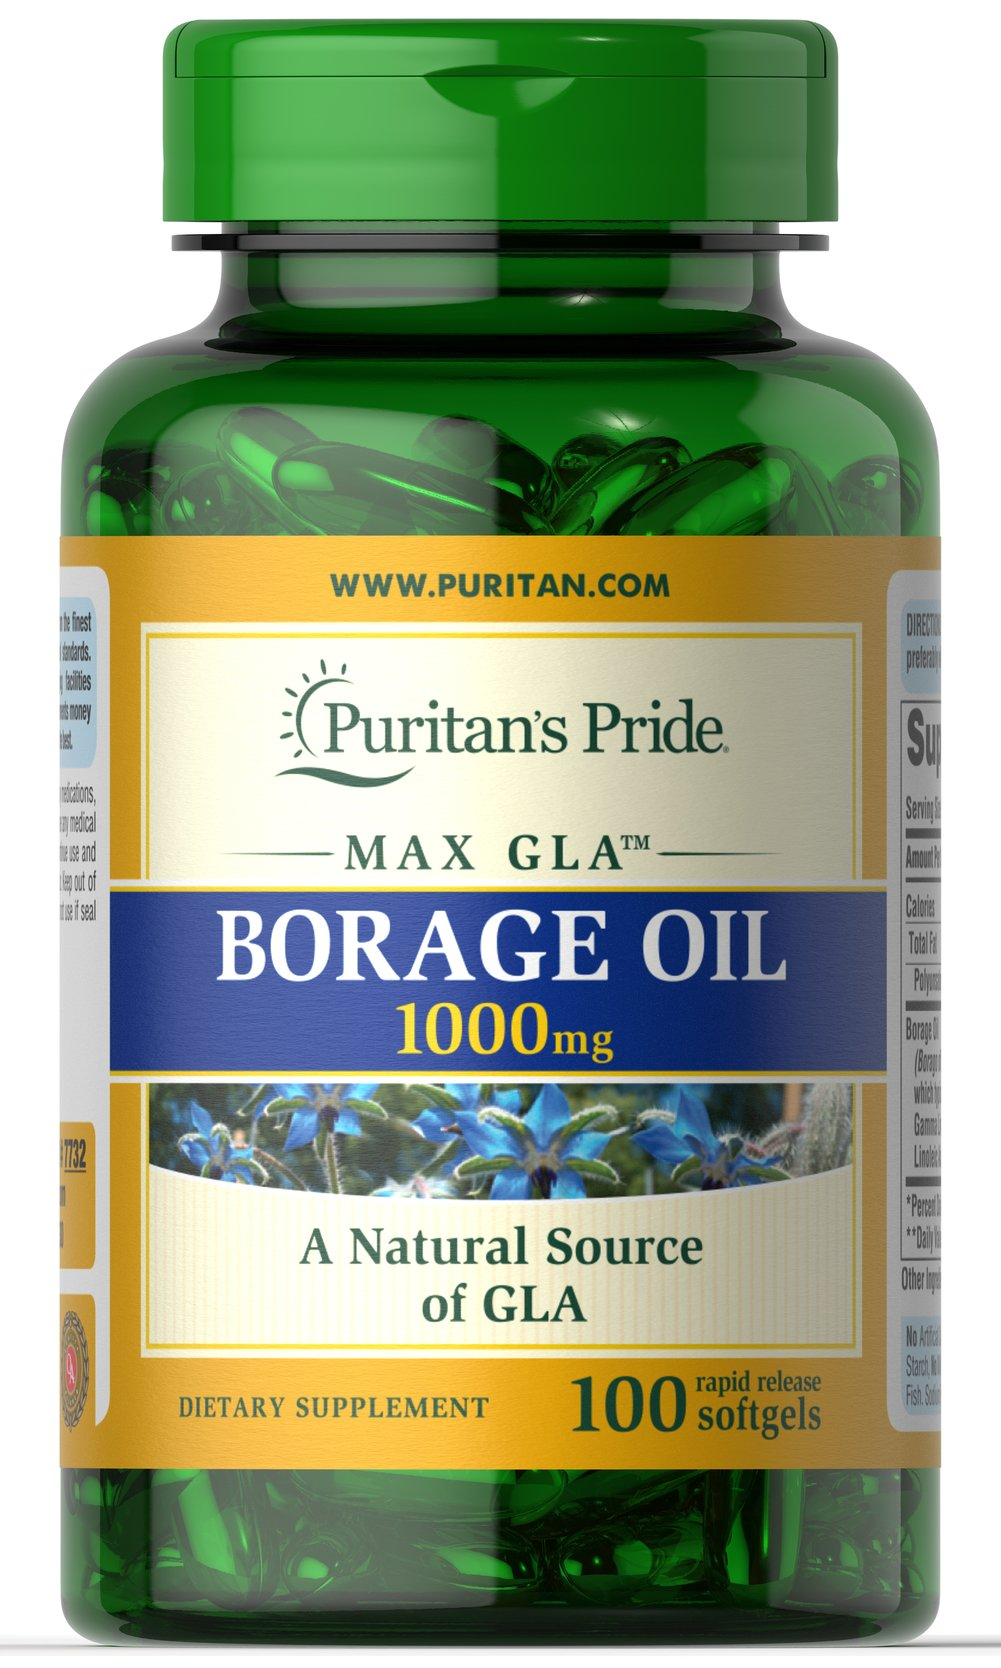 Borage Oil 1000 mg <p>Borage Oil is an excellent plant source of the Omega-6 fatty acid Gamma Linolenic Acid (GLA). Perfect for people on low-fat diets, Borage Oil assists in the production of prostaglandins and supports cellular and metabolic health.** Research indicates that GLA is also beneficial for women's health.** Our 1000 mg softgels typically contain 190 mg of GLA and 350 mg of Linoleic Acid.</p> 100 Softgels 1000 mg $27.99